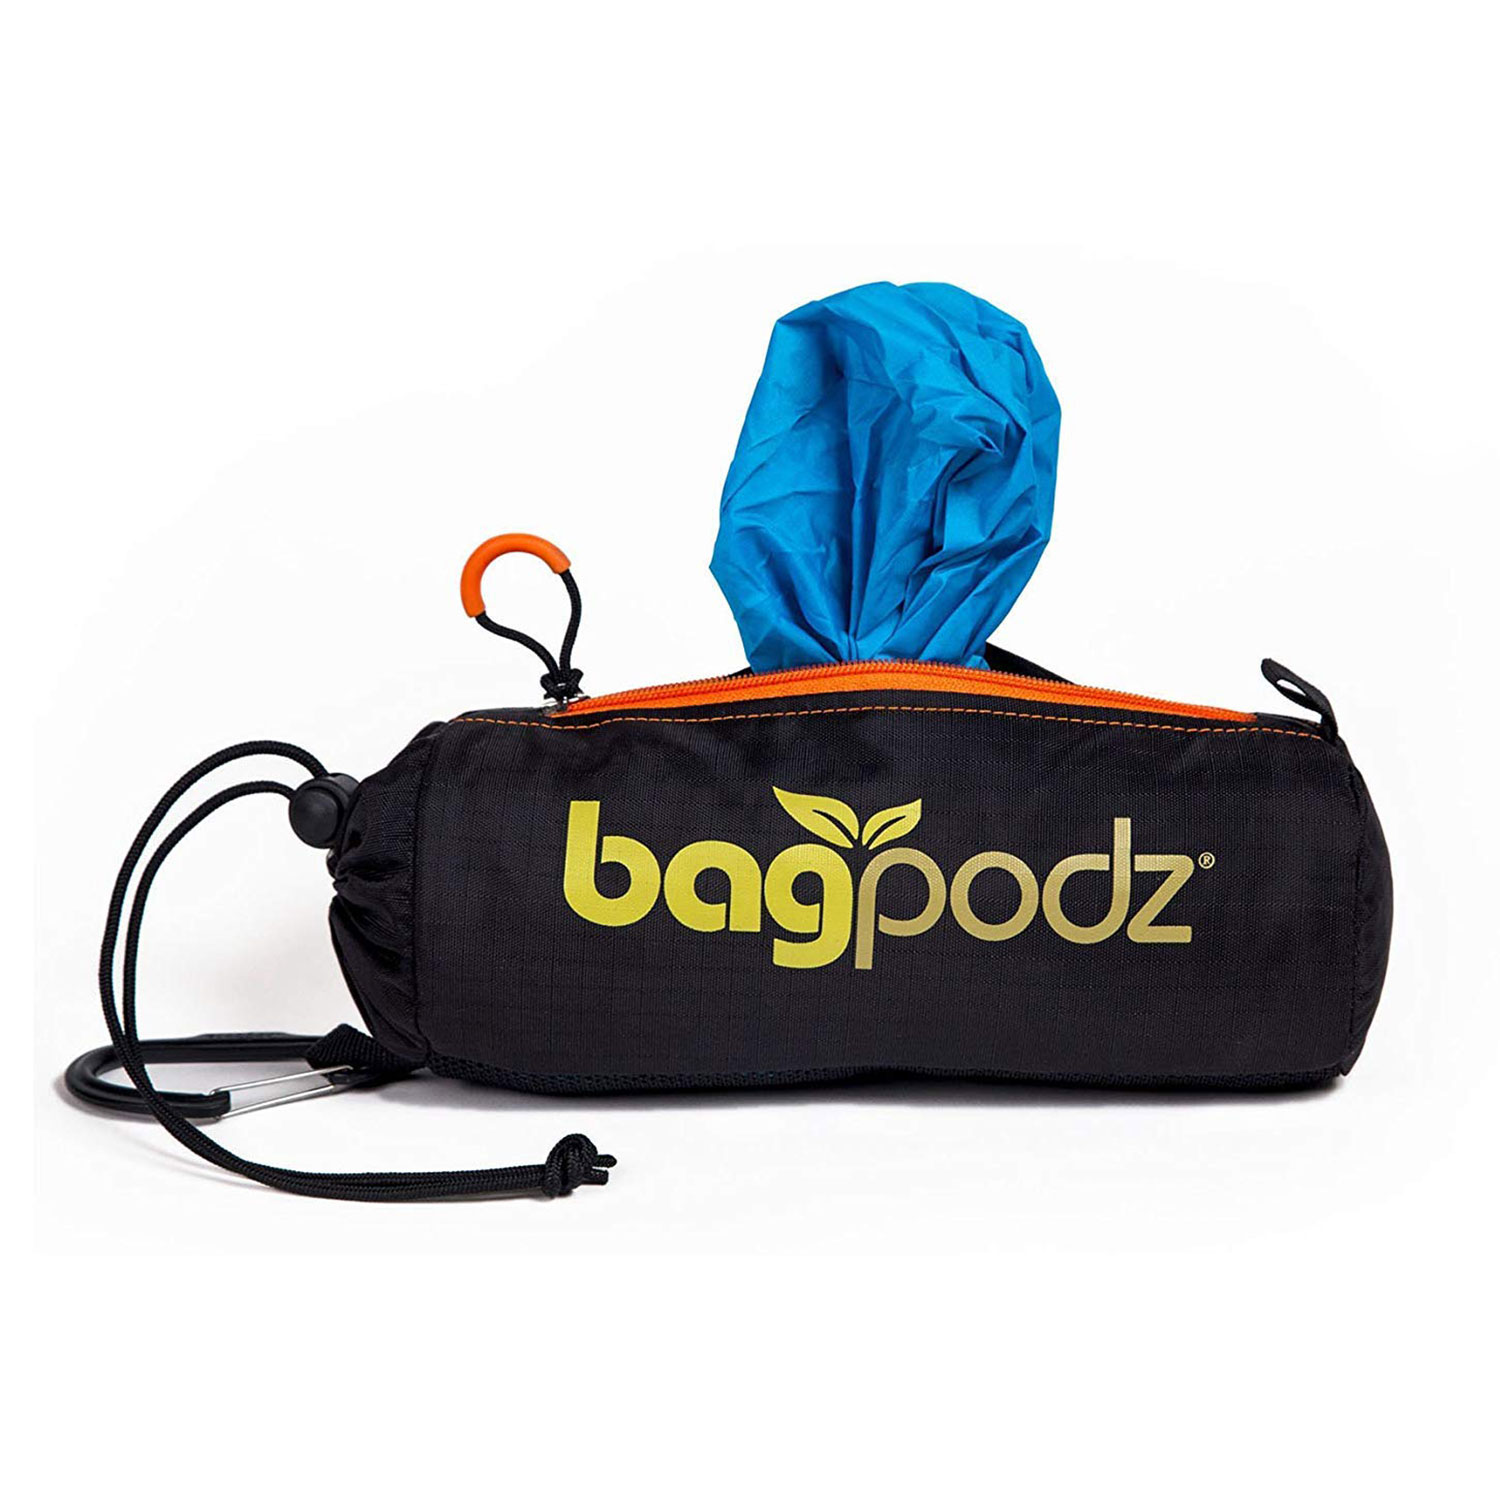 BagPodz Reusable Shopping Bags 10 Foldable Bags Inside a Compact Pod with Carry Clip